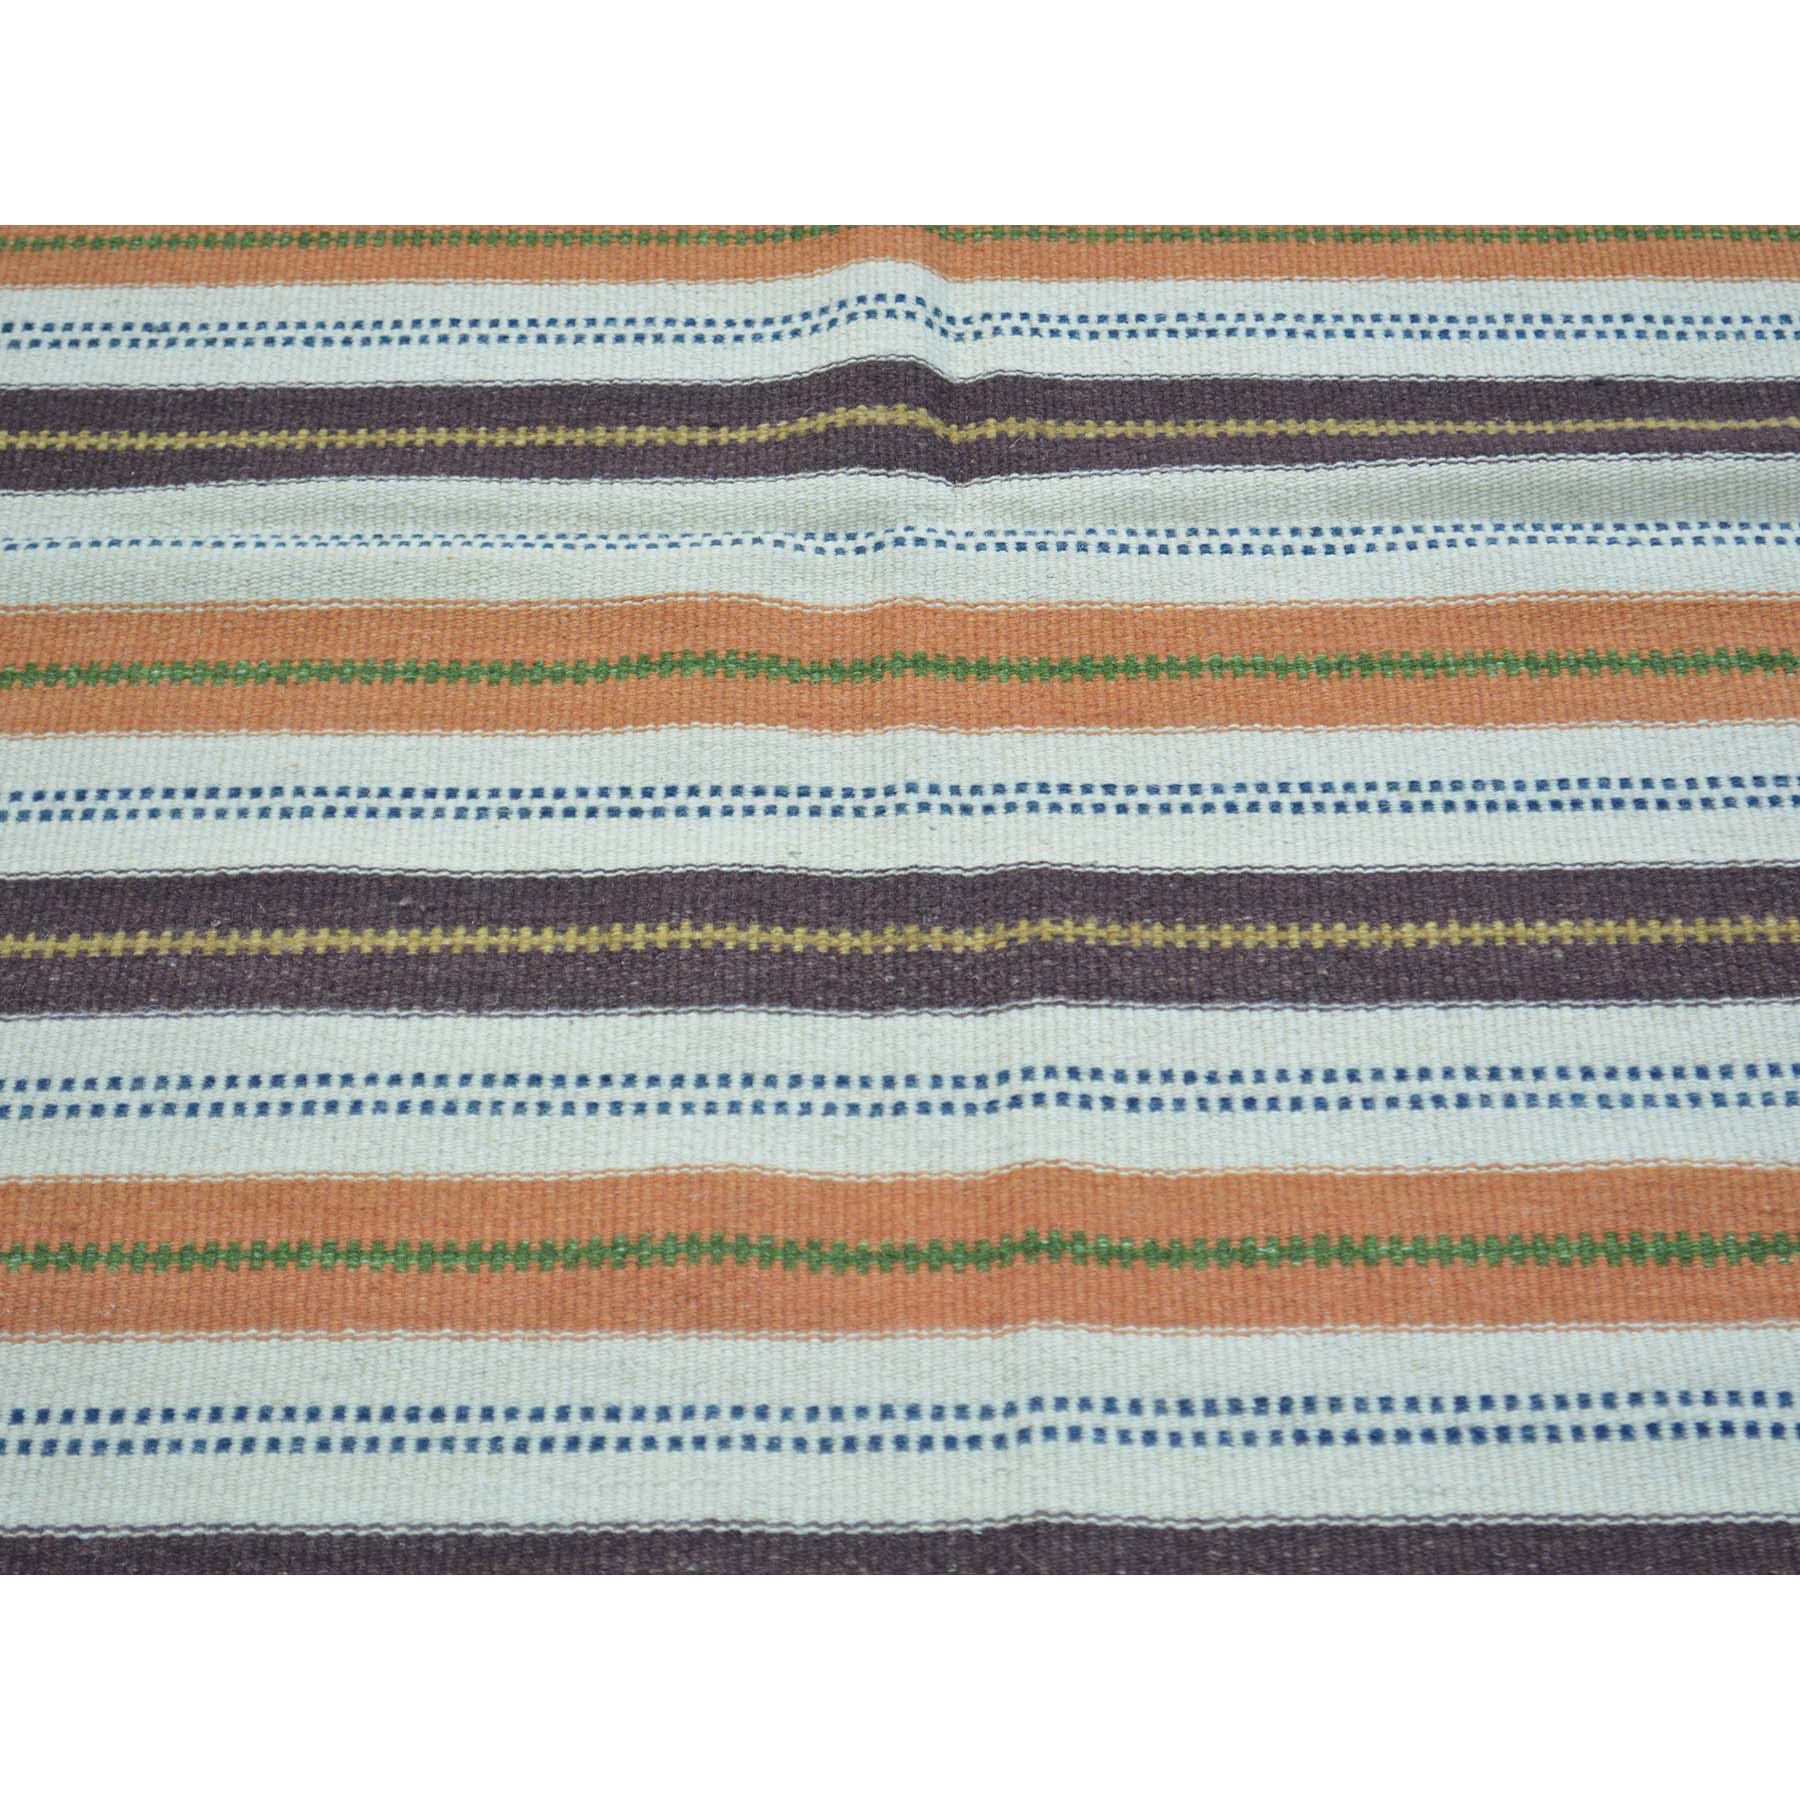 4-x5-10  Flat Weave Hand Woven Striped Durie Kilim Pure Wool Rug